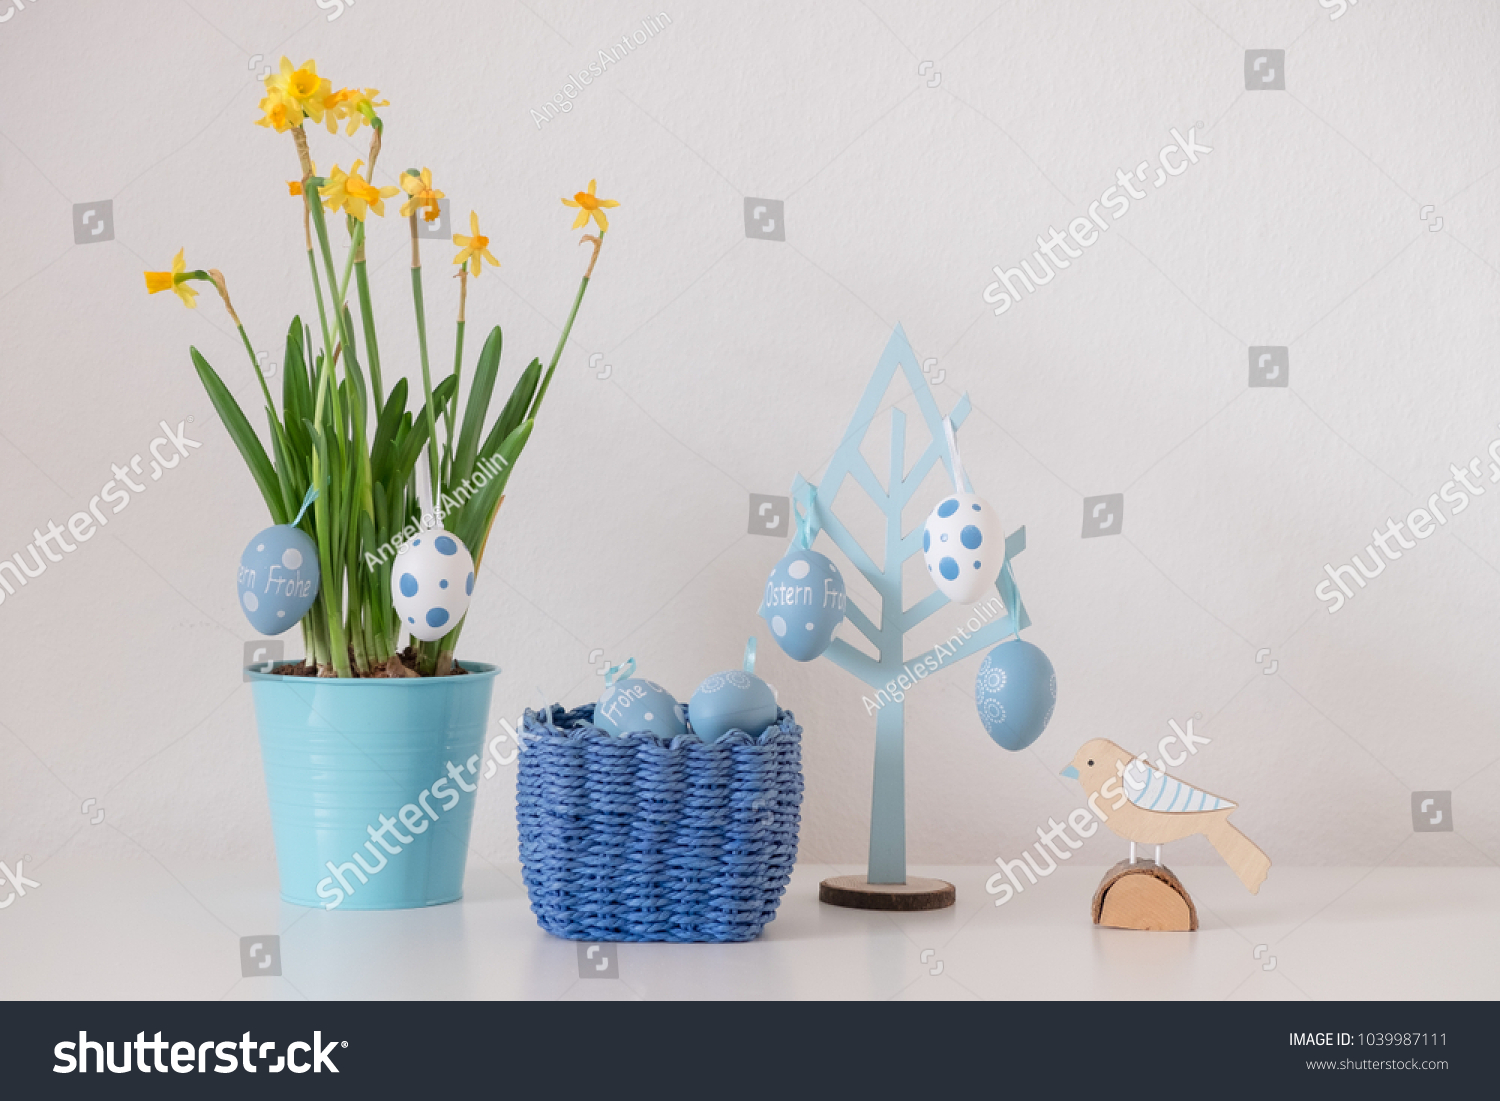 Living At Home Ostern Frohe Ostern Means Happy Easter German Stock Photo Edit Now